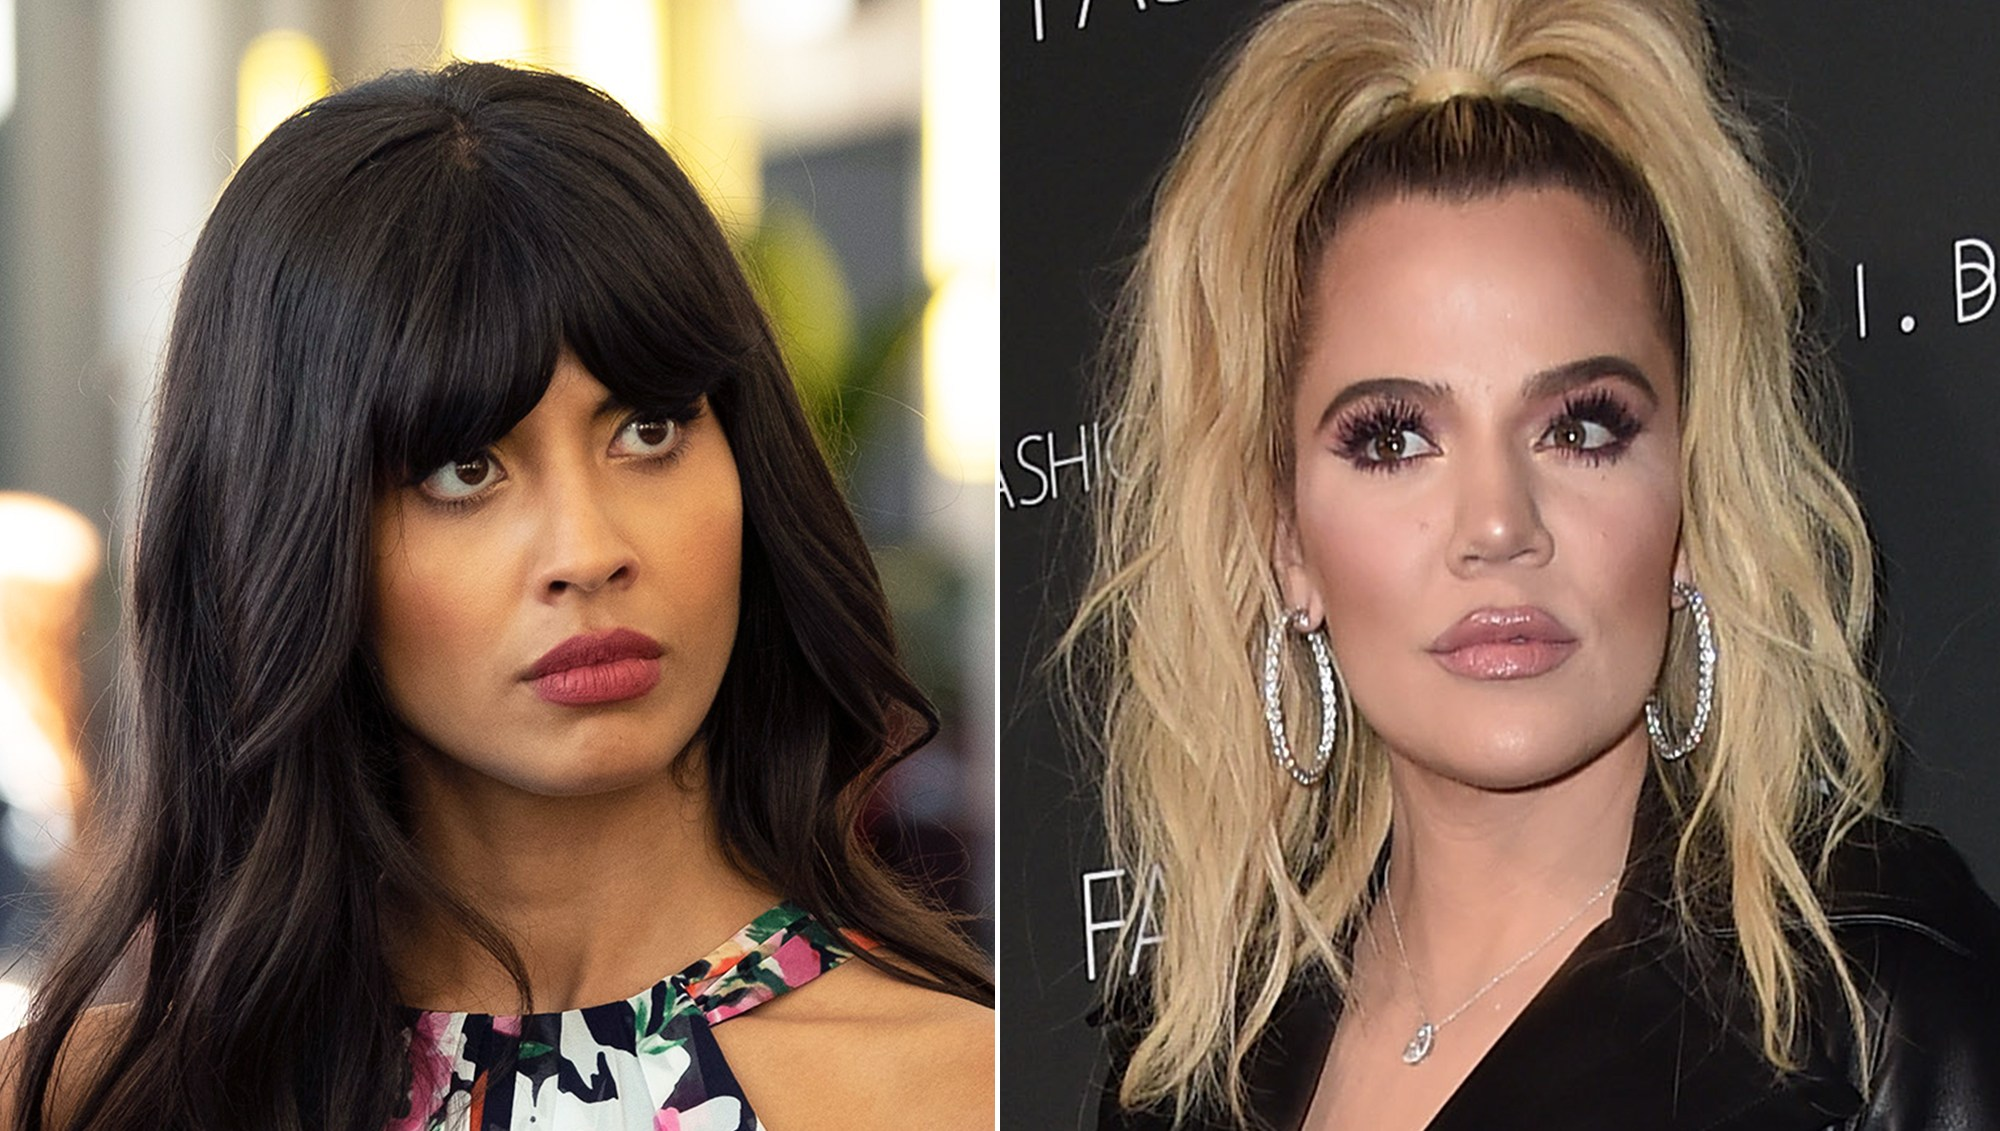 Jameela Jamil Calls Khloe Kardashian's Weight Loss Post 'Sad': 'This Poor Woman'